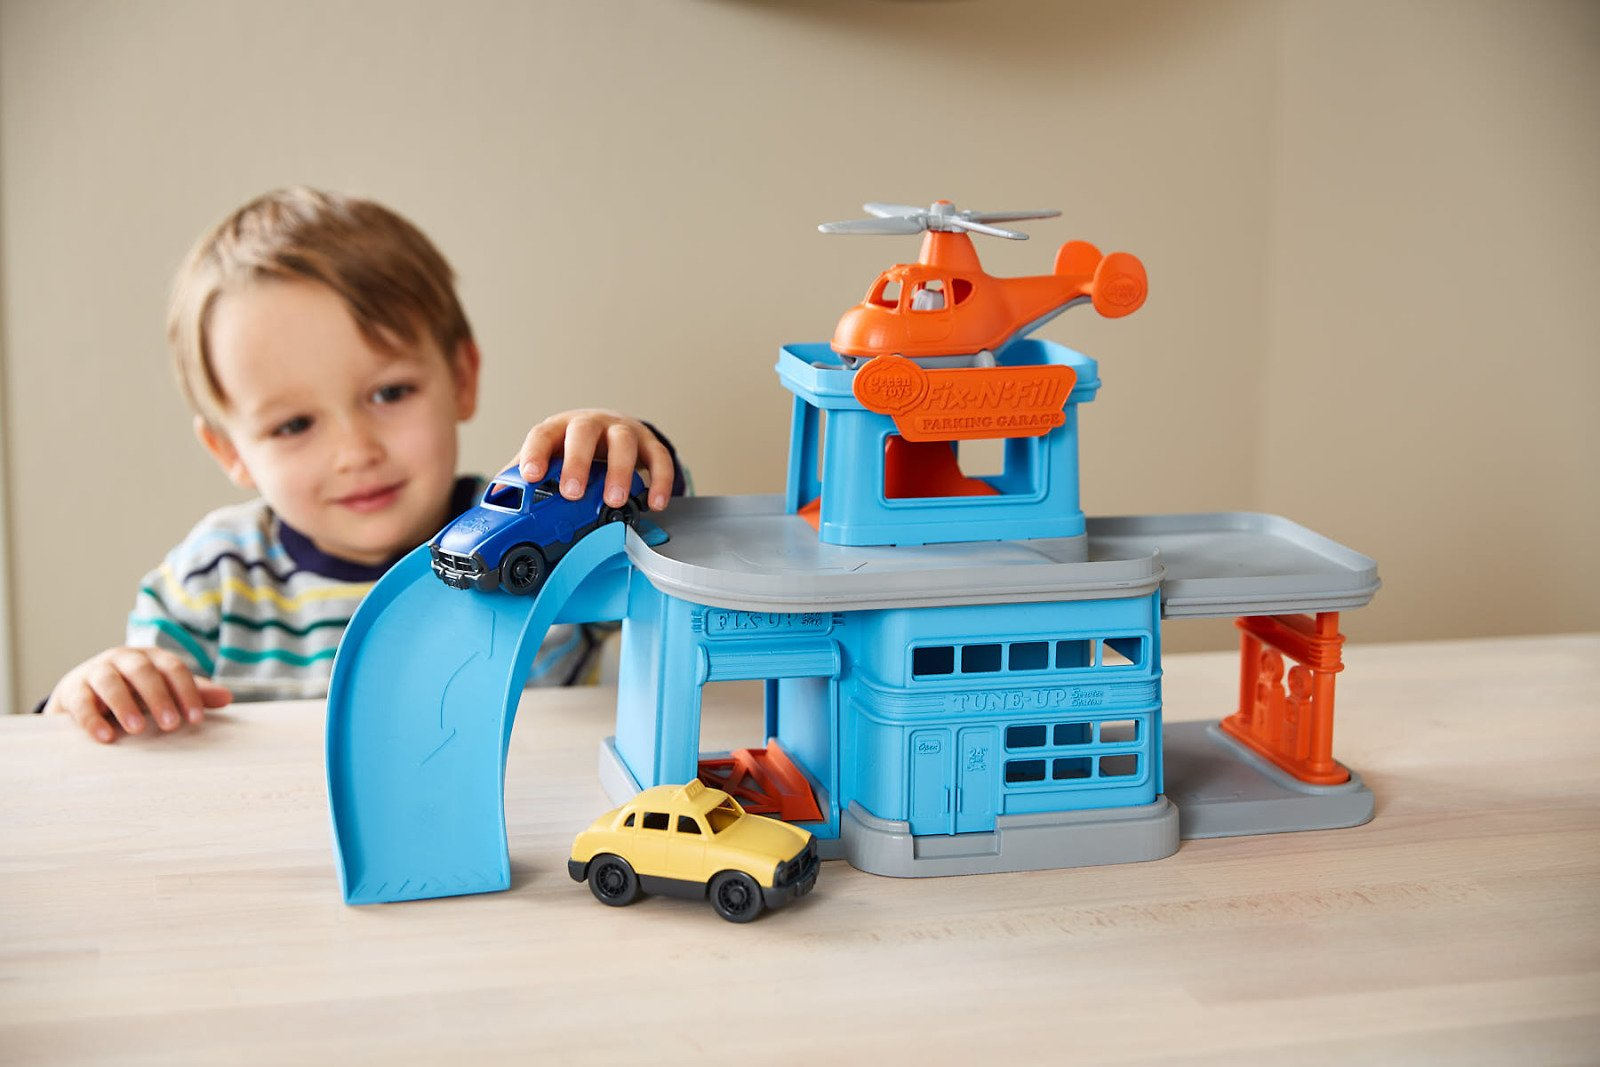 Price Drop! Green Toys Parking Garage with 3 Vehicles